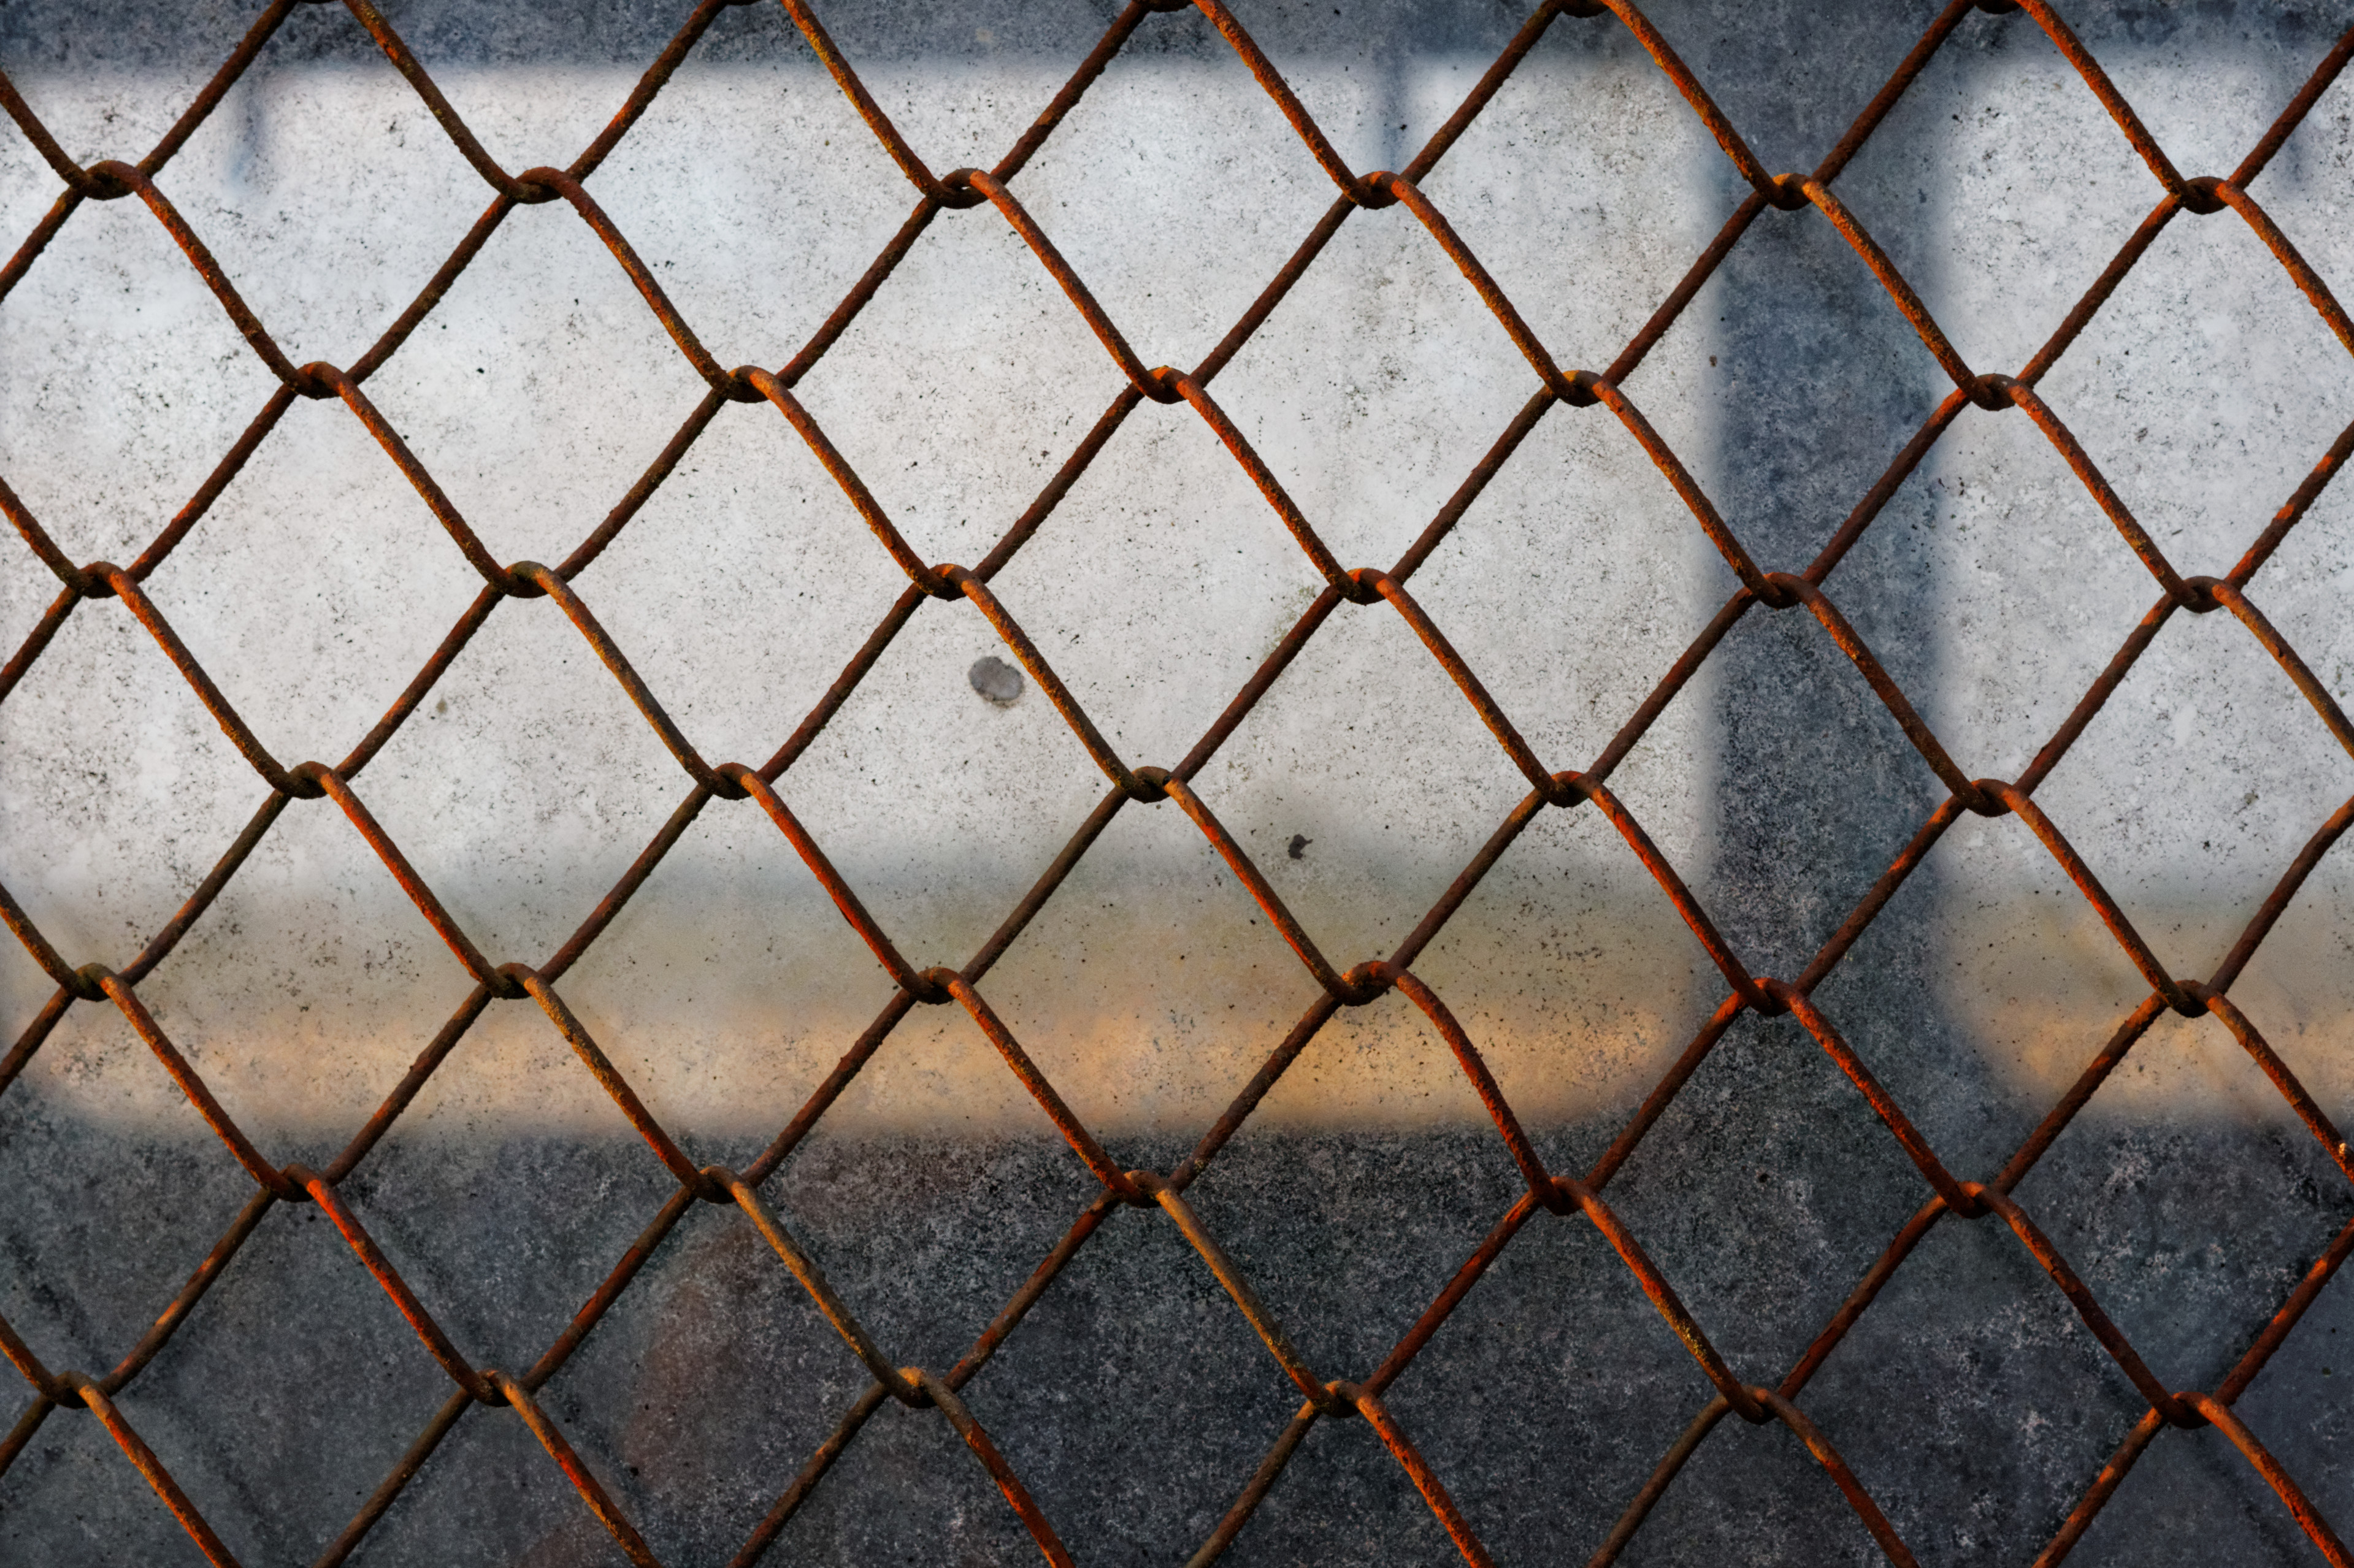 Fence, fence, perimeter, rust, metal, chainlink, fence, wire, wiring